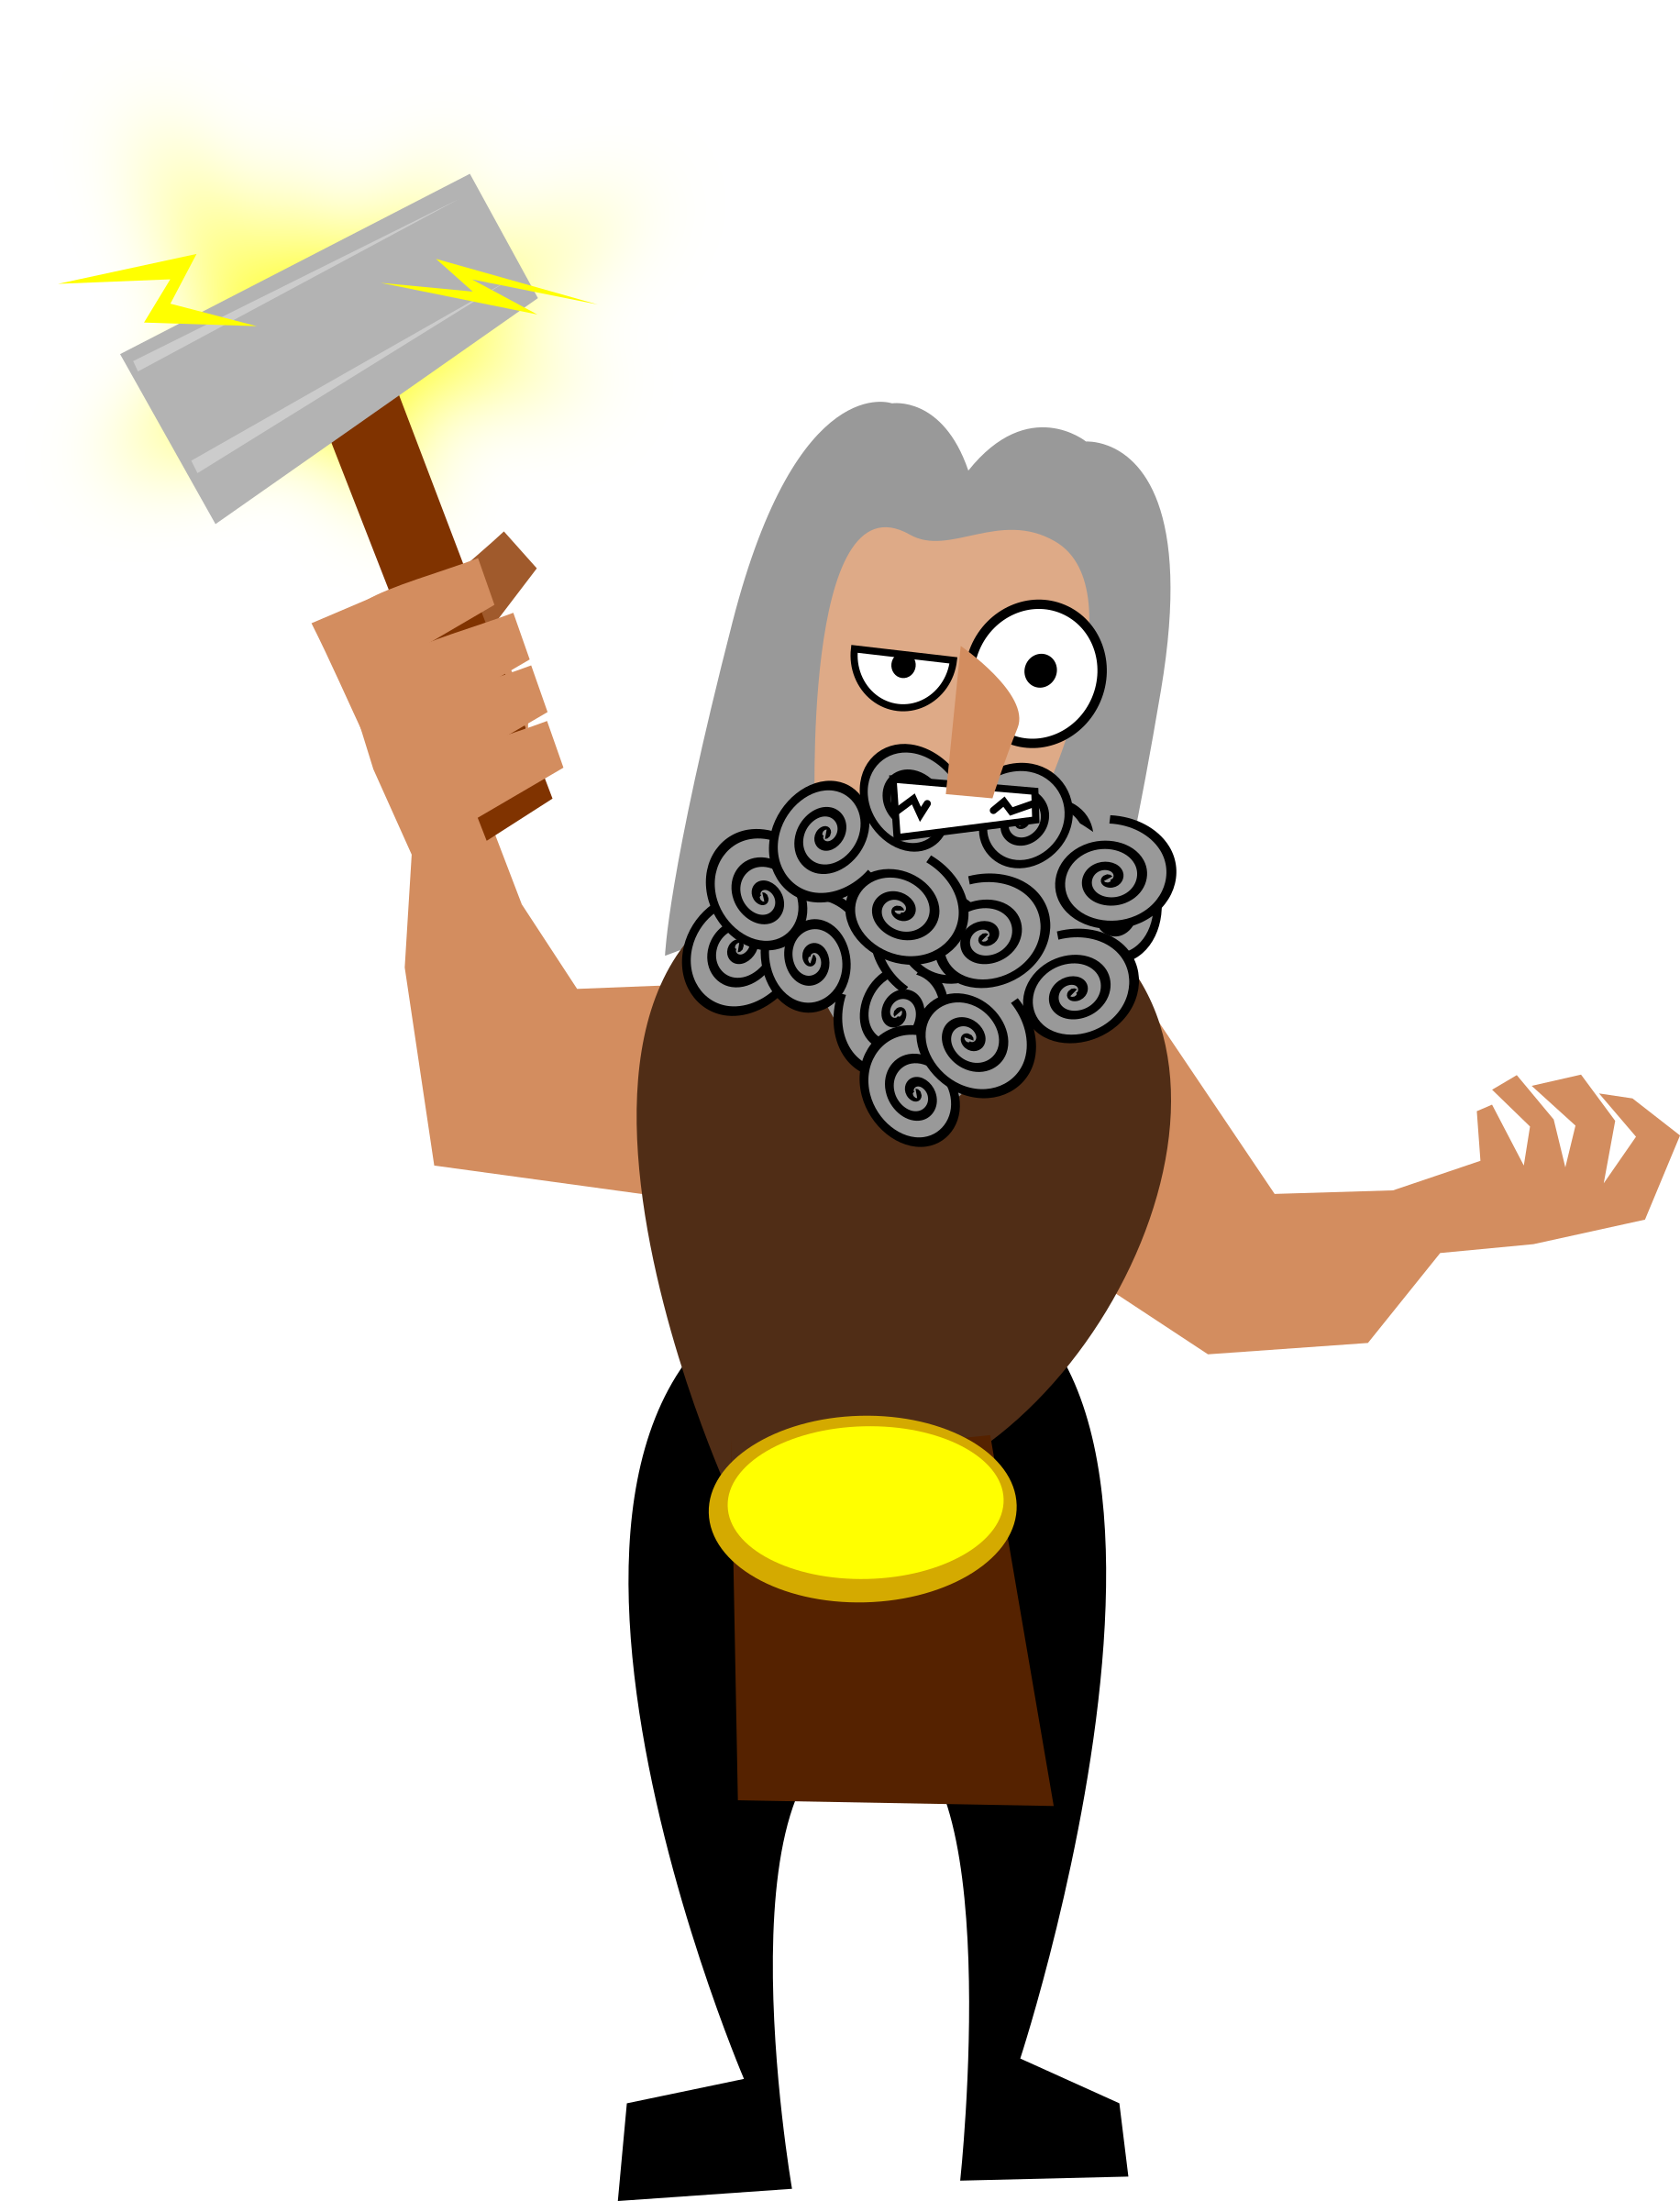 Big image png. Hammer clipart thor